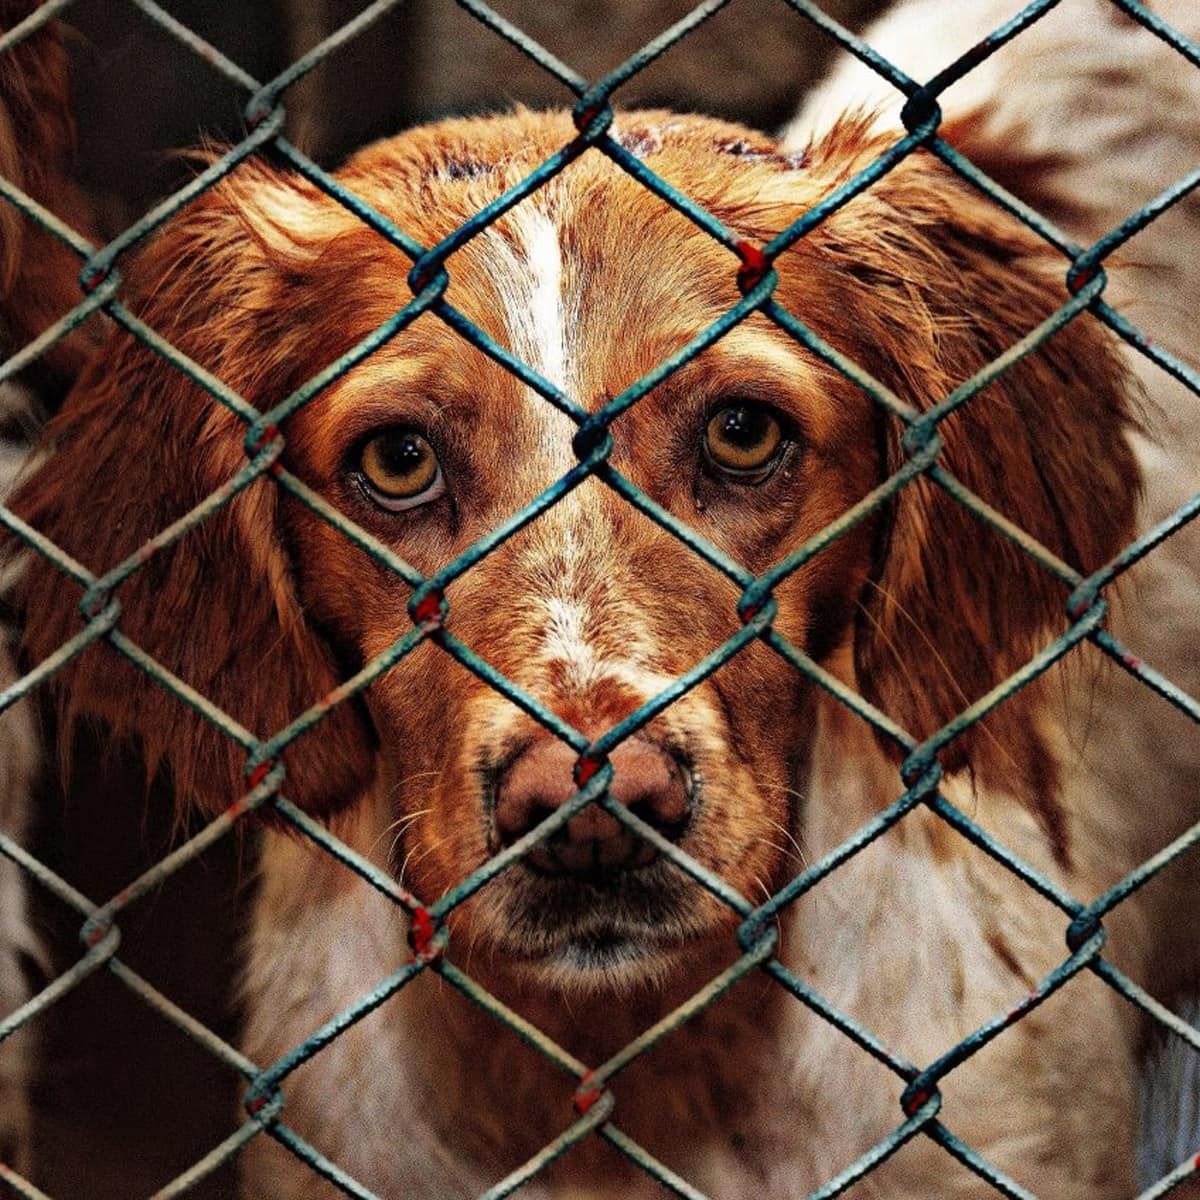 What is Animal Cruelty?